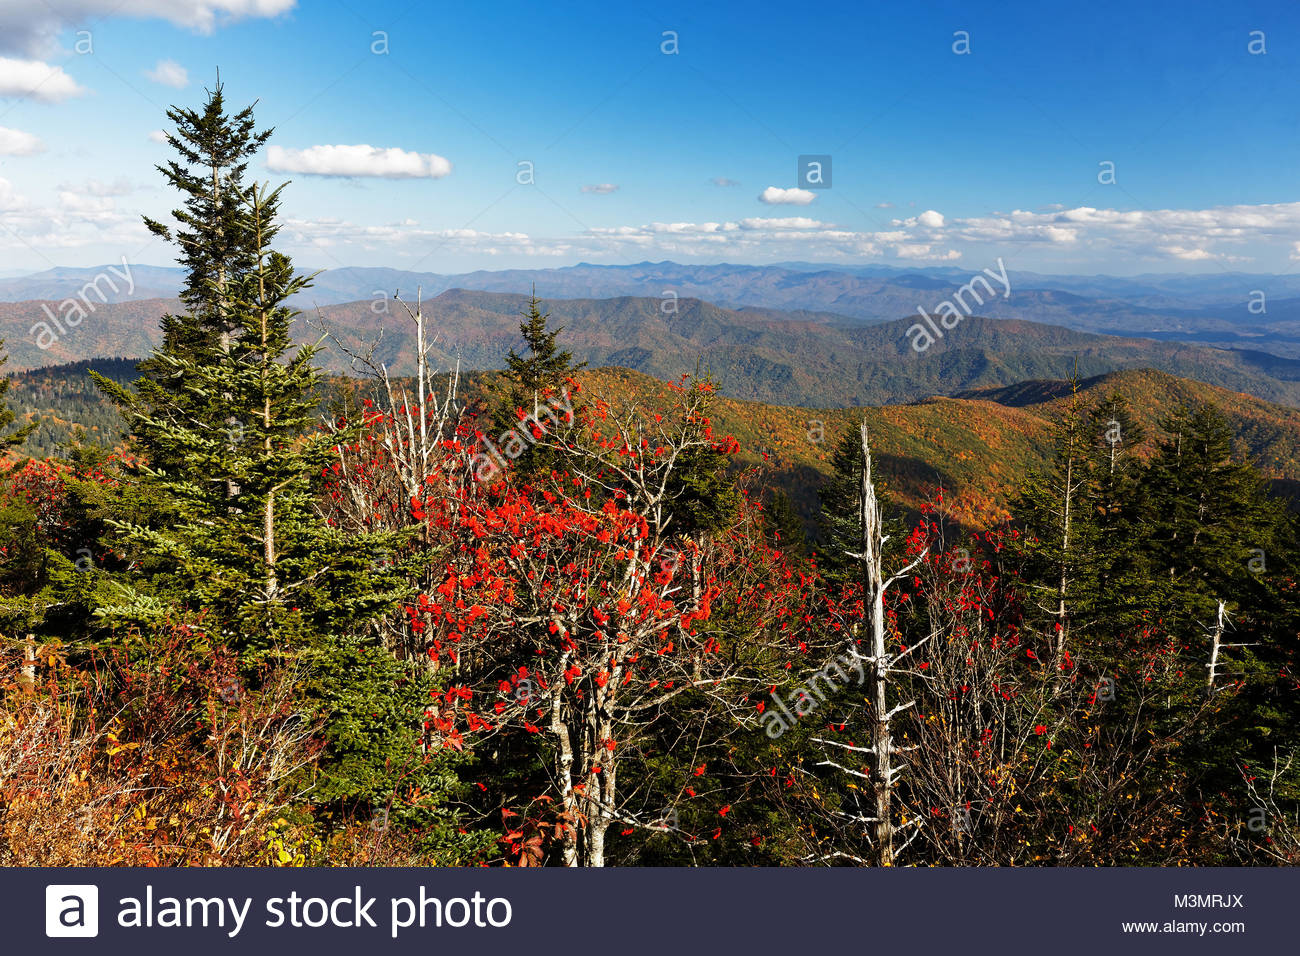 Mountain Ash berrys at sunset, with a early autumn background from Clinmans Dome, GSMNP - Stock Image